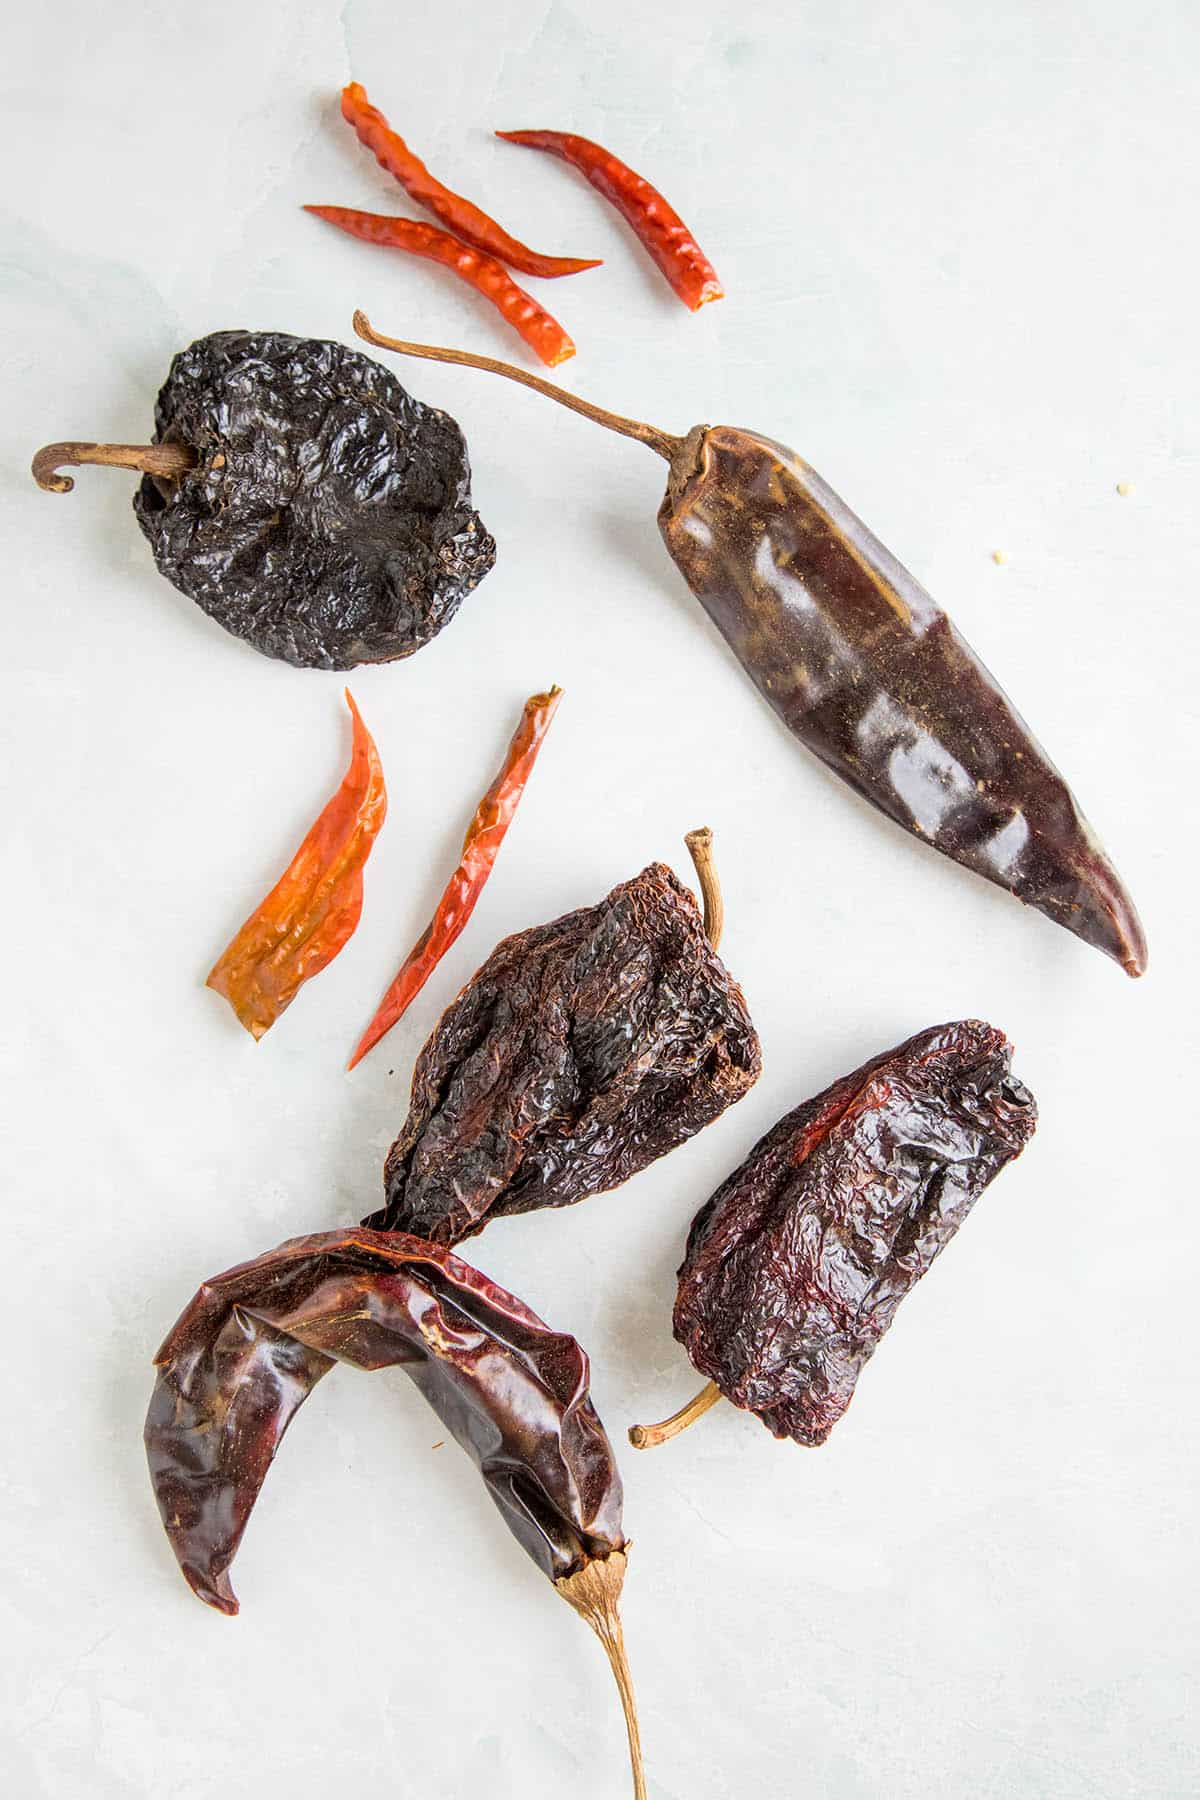 Dried chili pepper pods for making Homemade Chili Powder